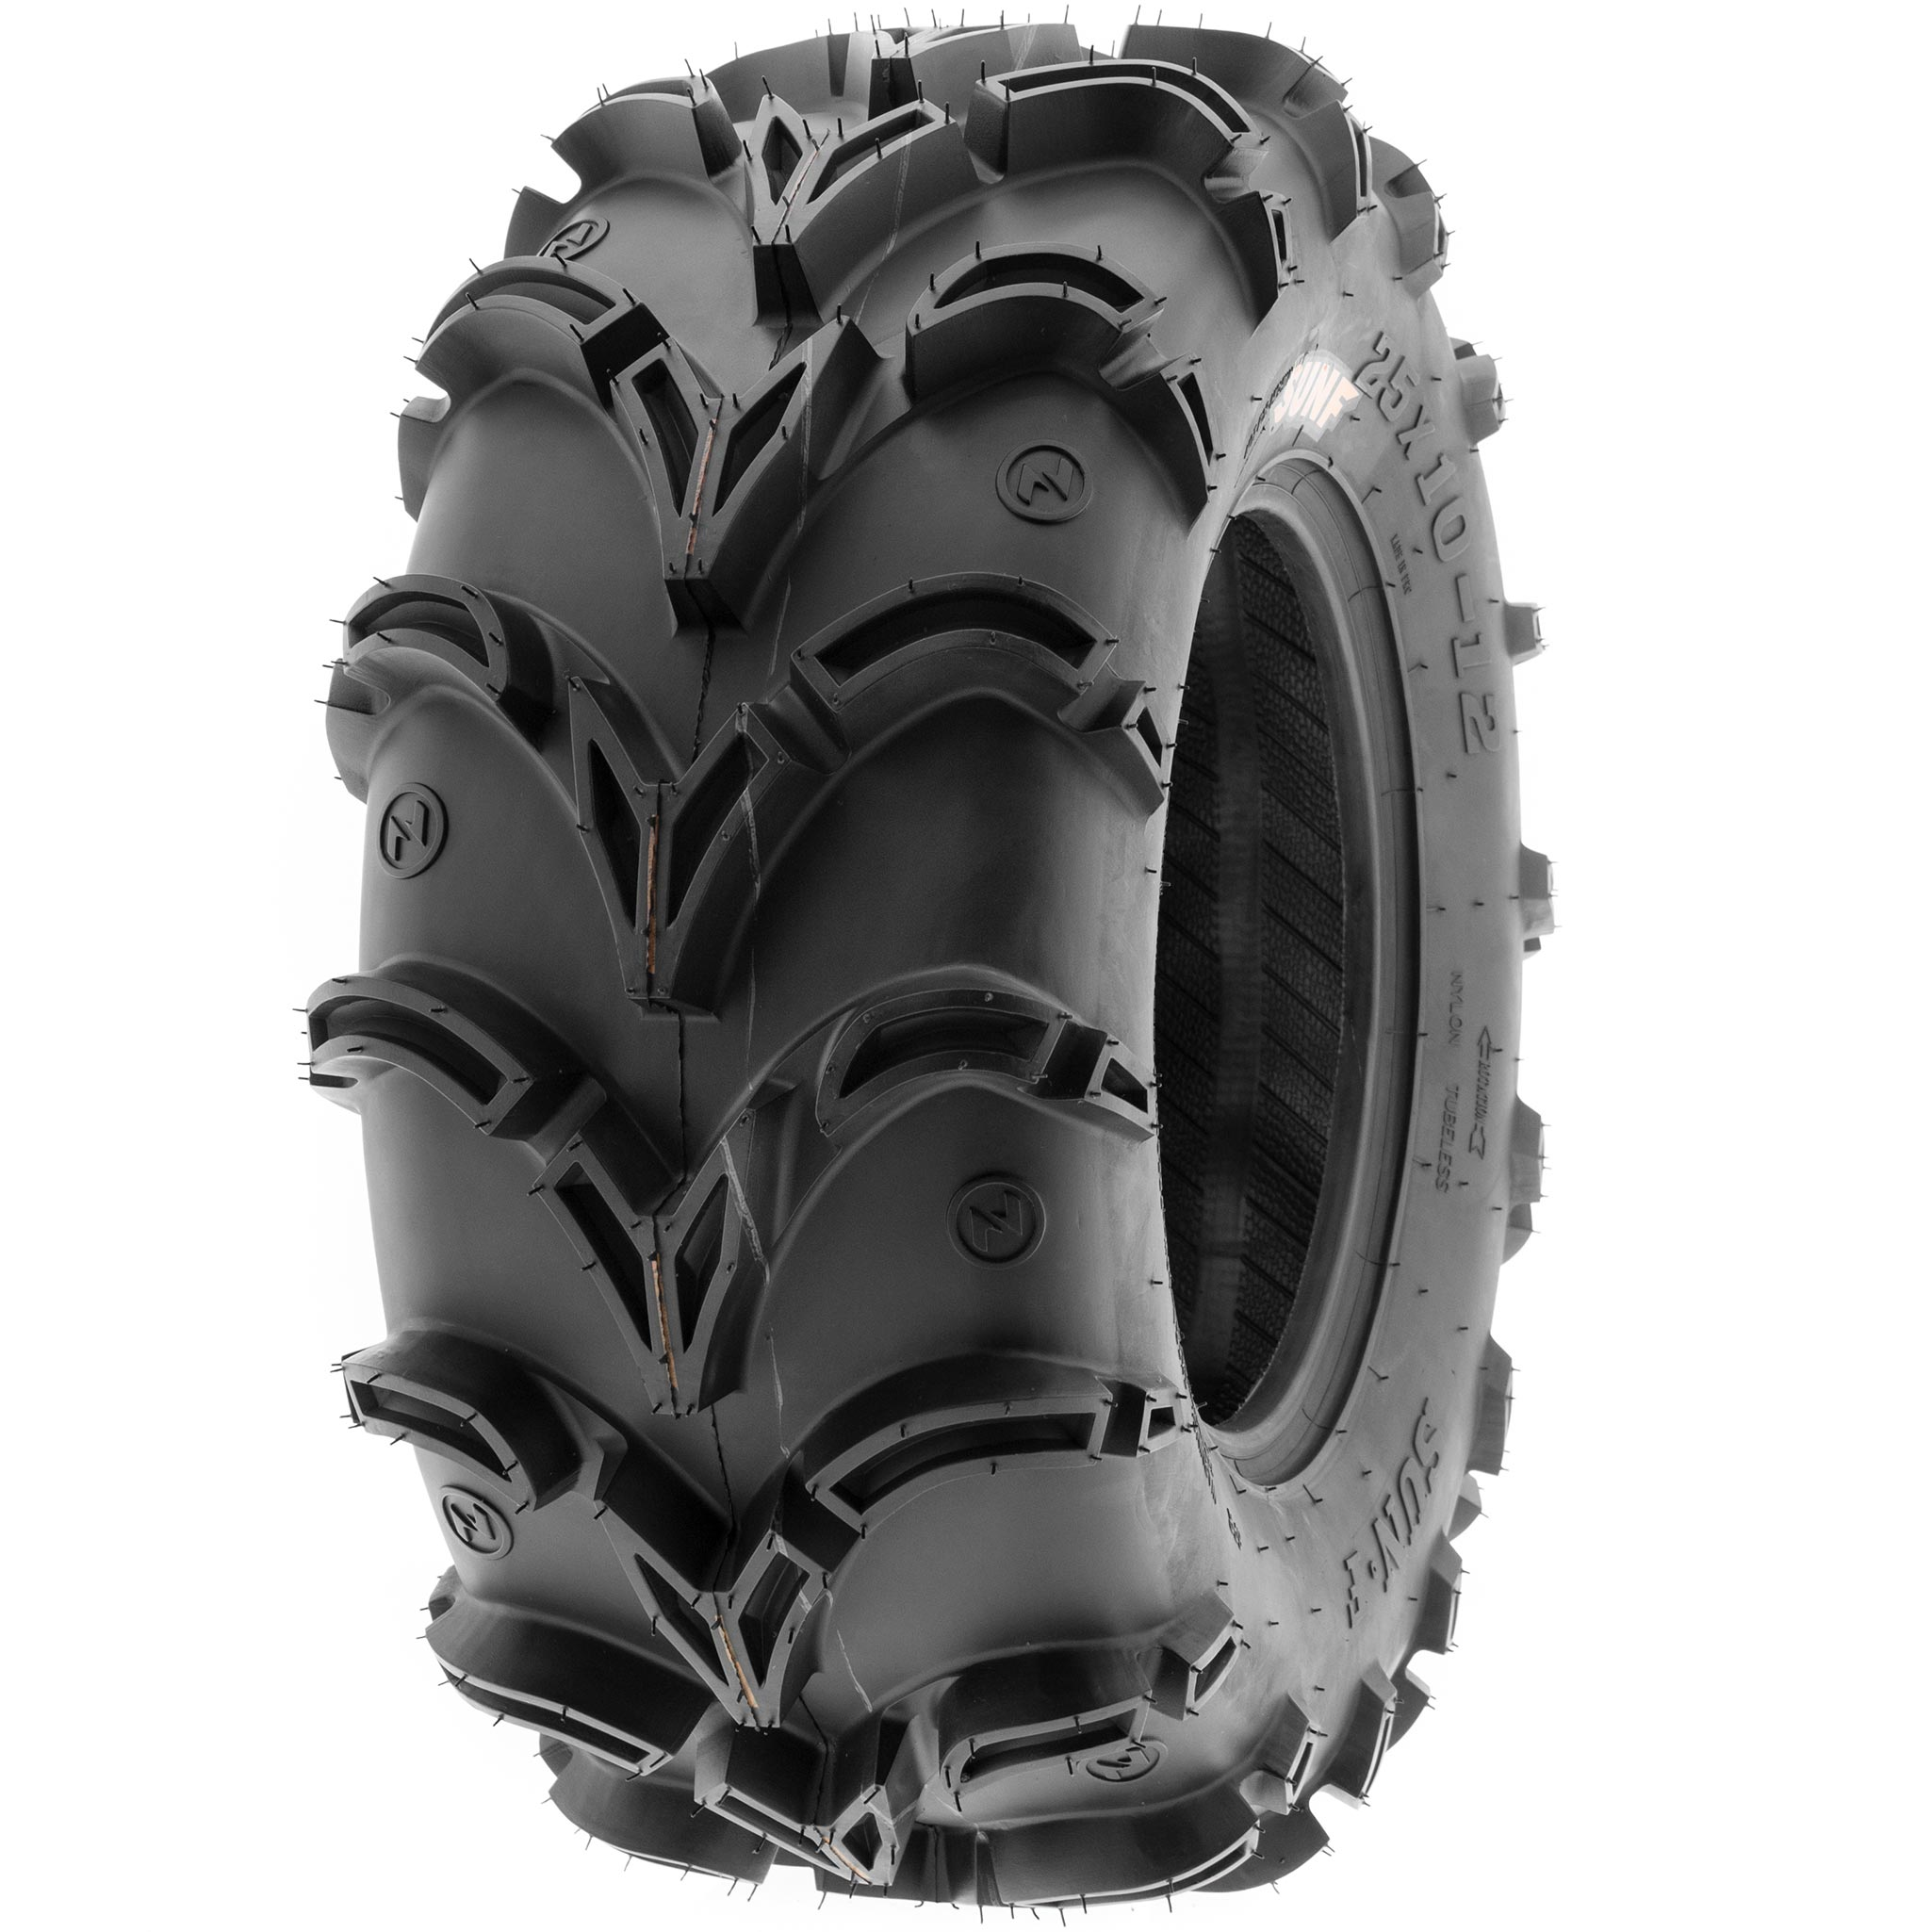 SunF 27x11-14 ATV UTV Tire 27x11x14  All Terrain Replacement 6 Ply A050 Tubeless